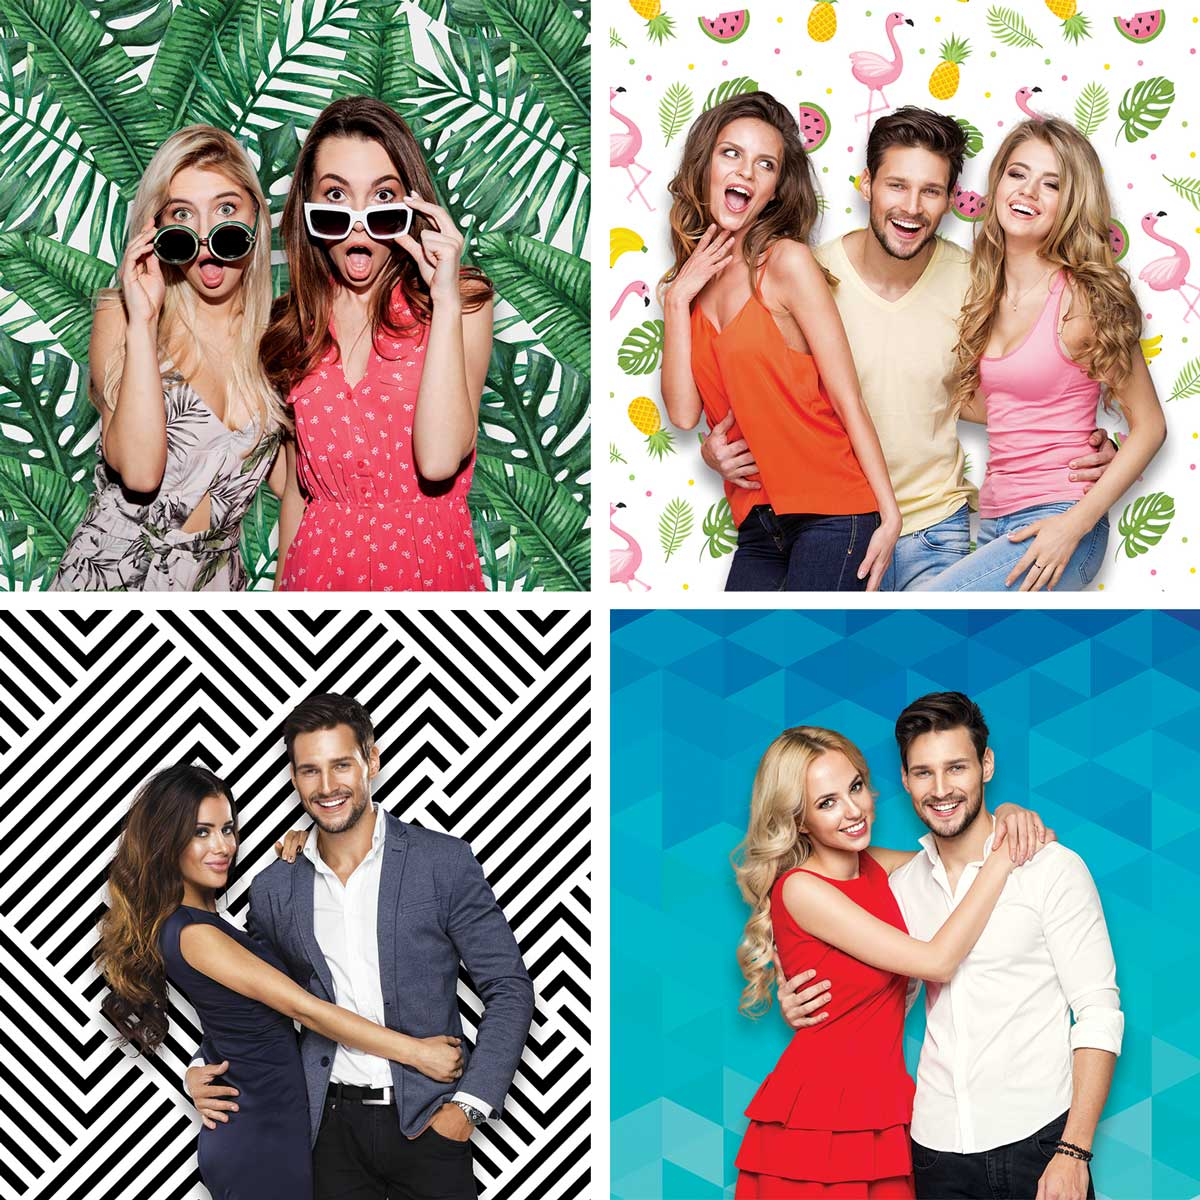 30A-photo-booth-backdrops.jpg